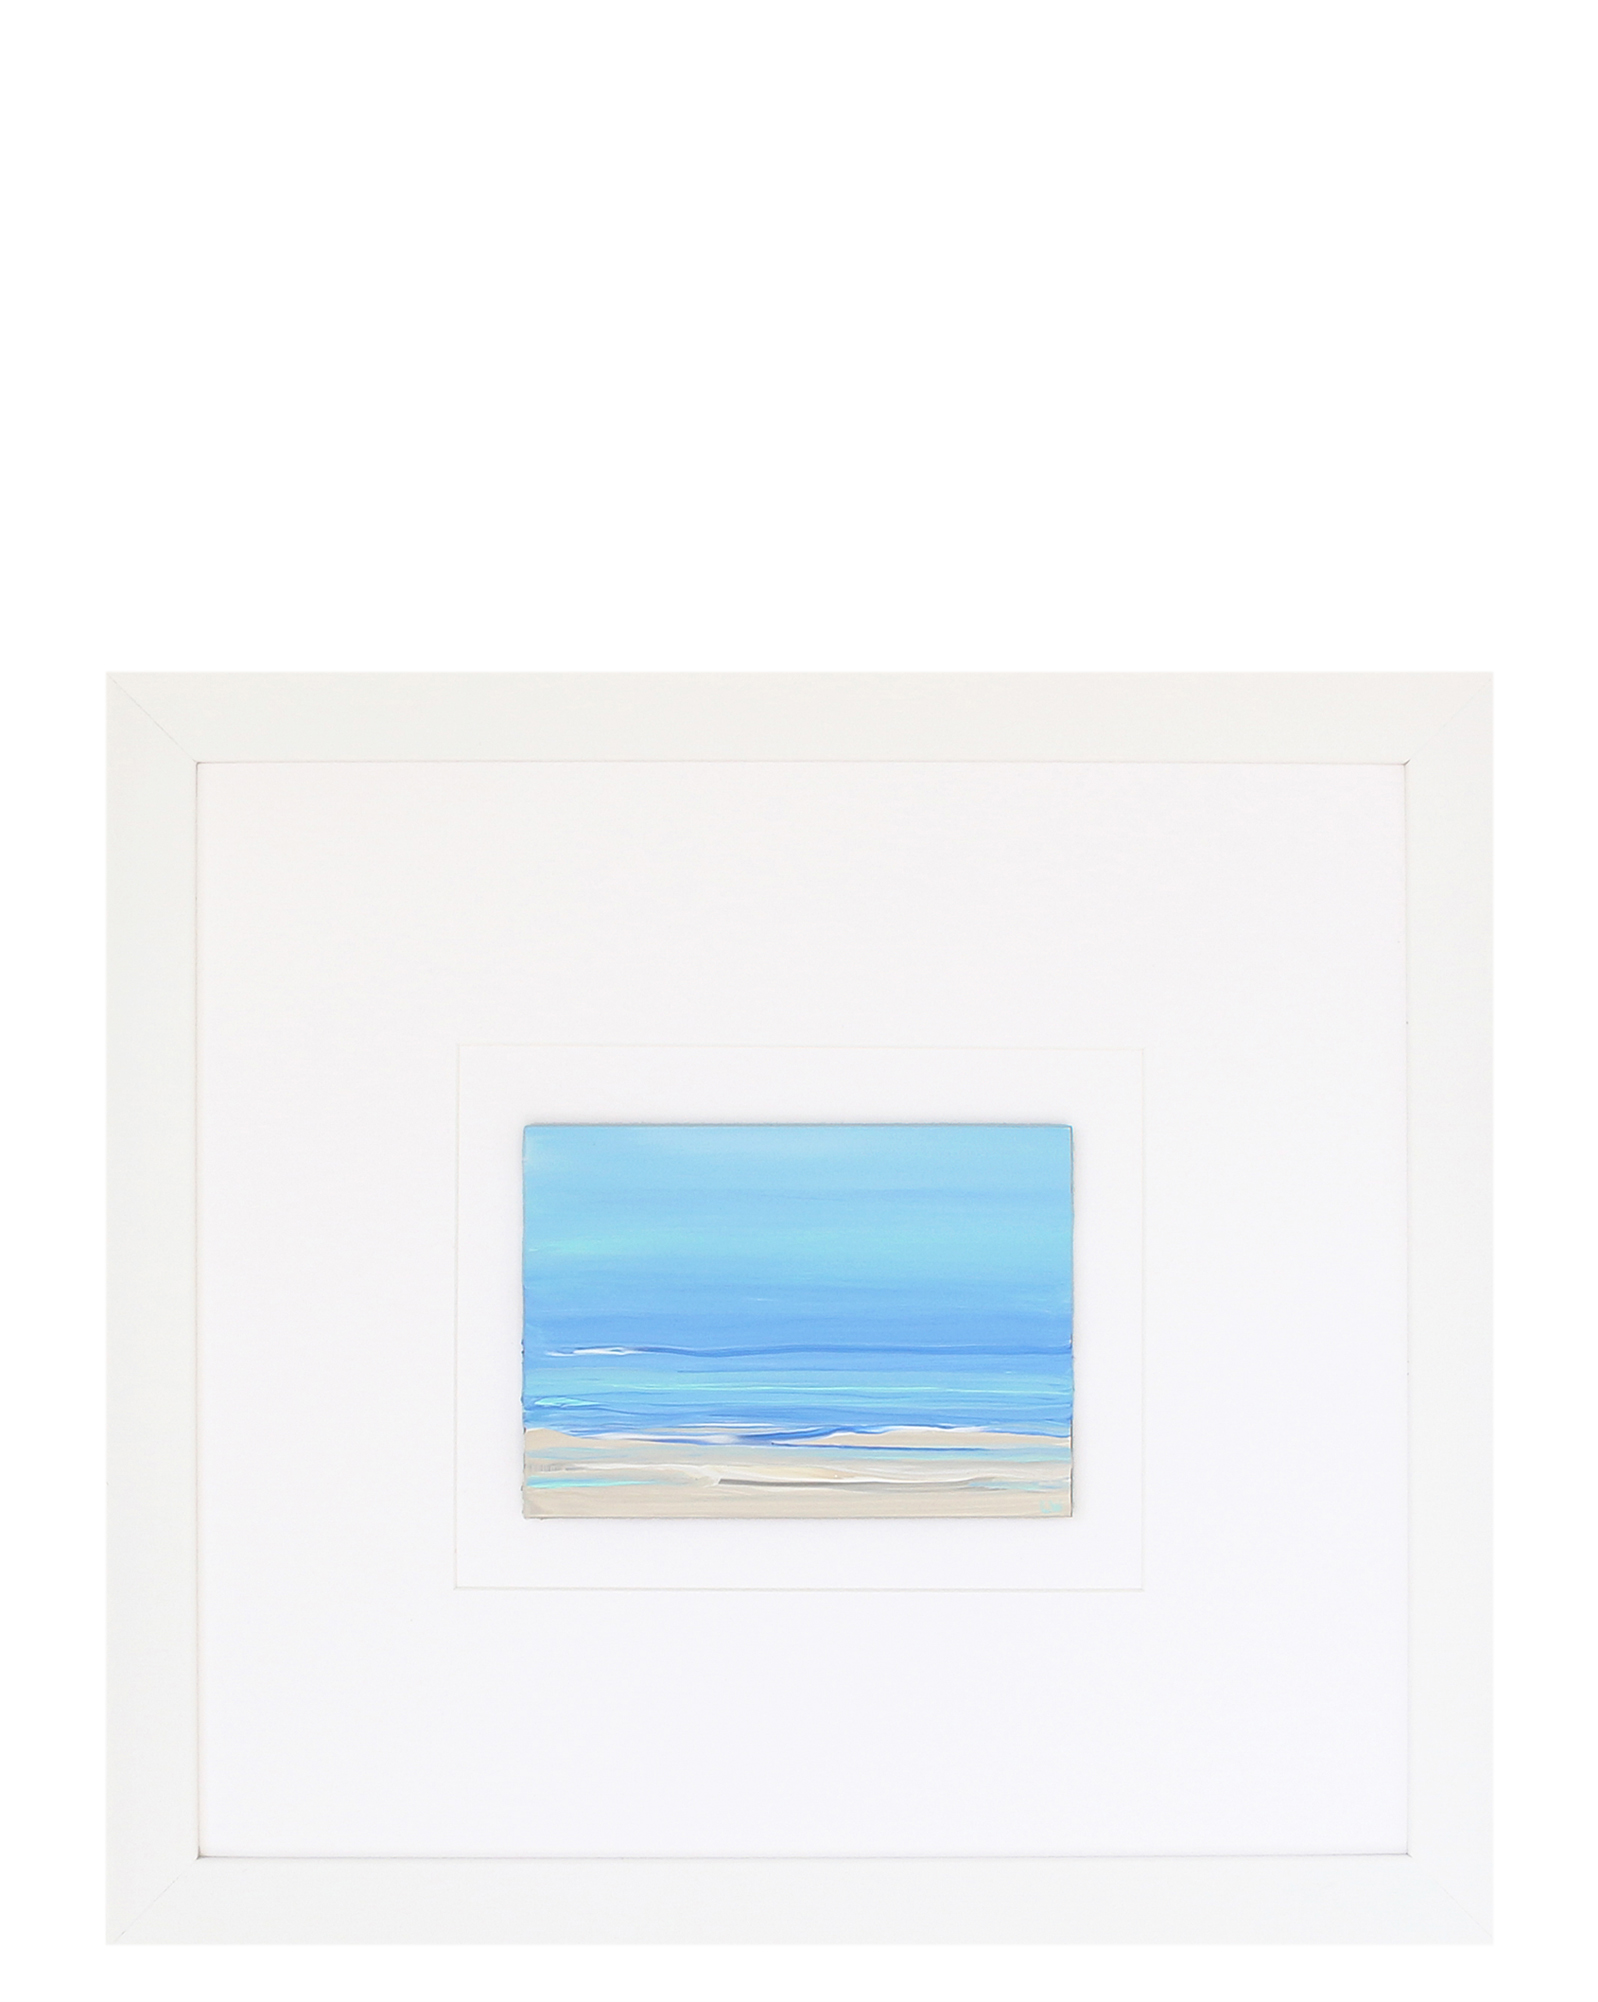 """Ocean Memories 181"" by Laurie Winthers,"